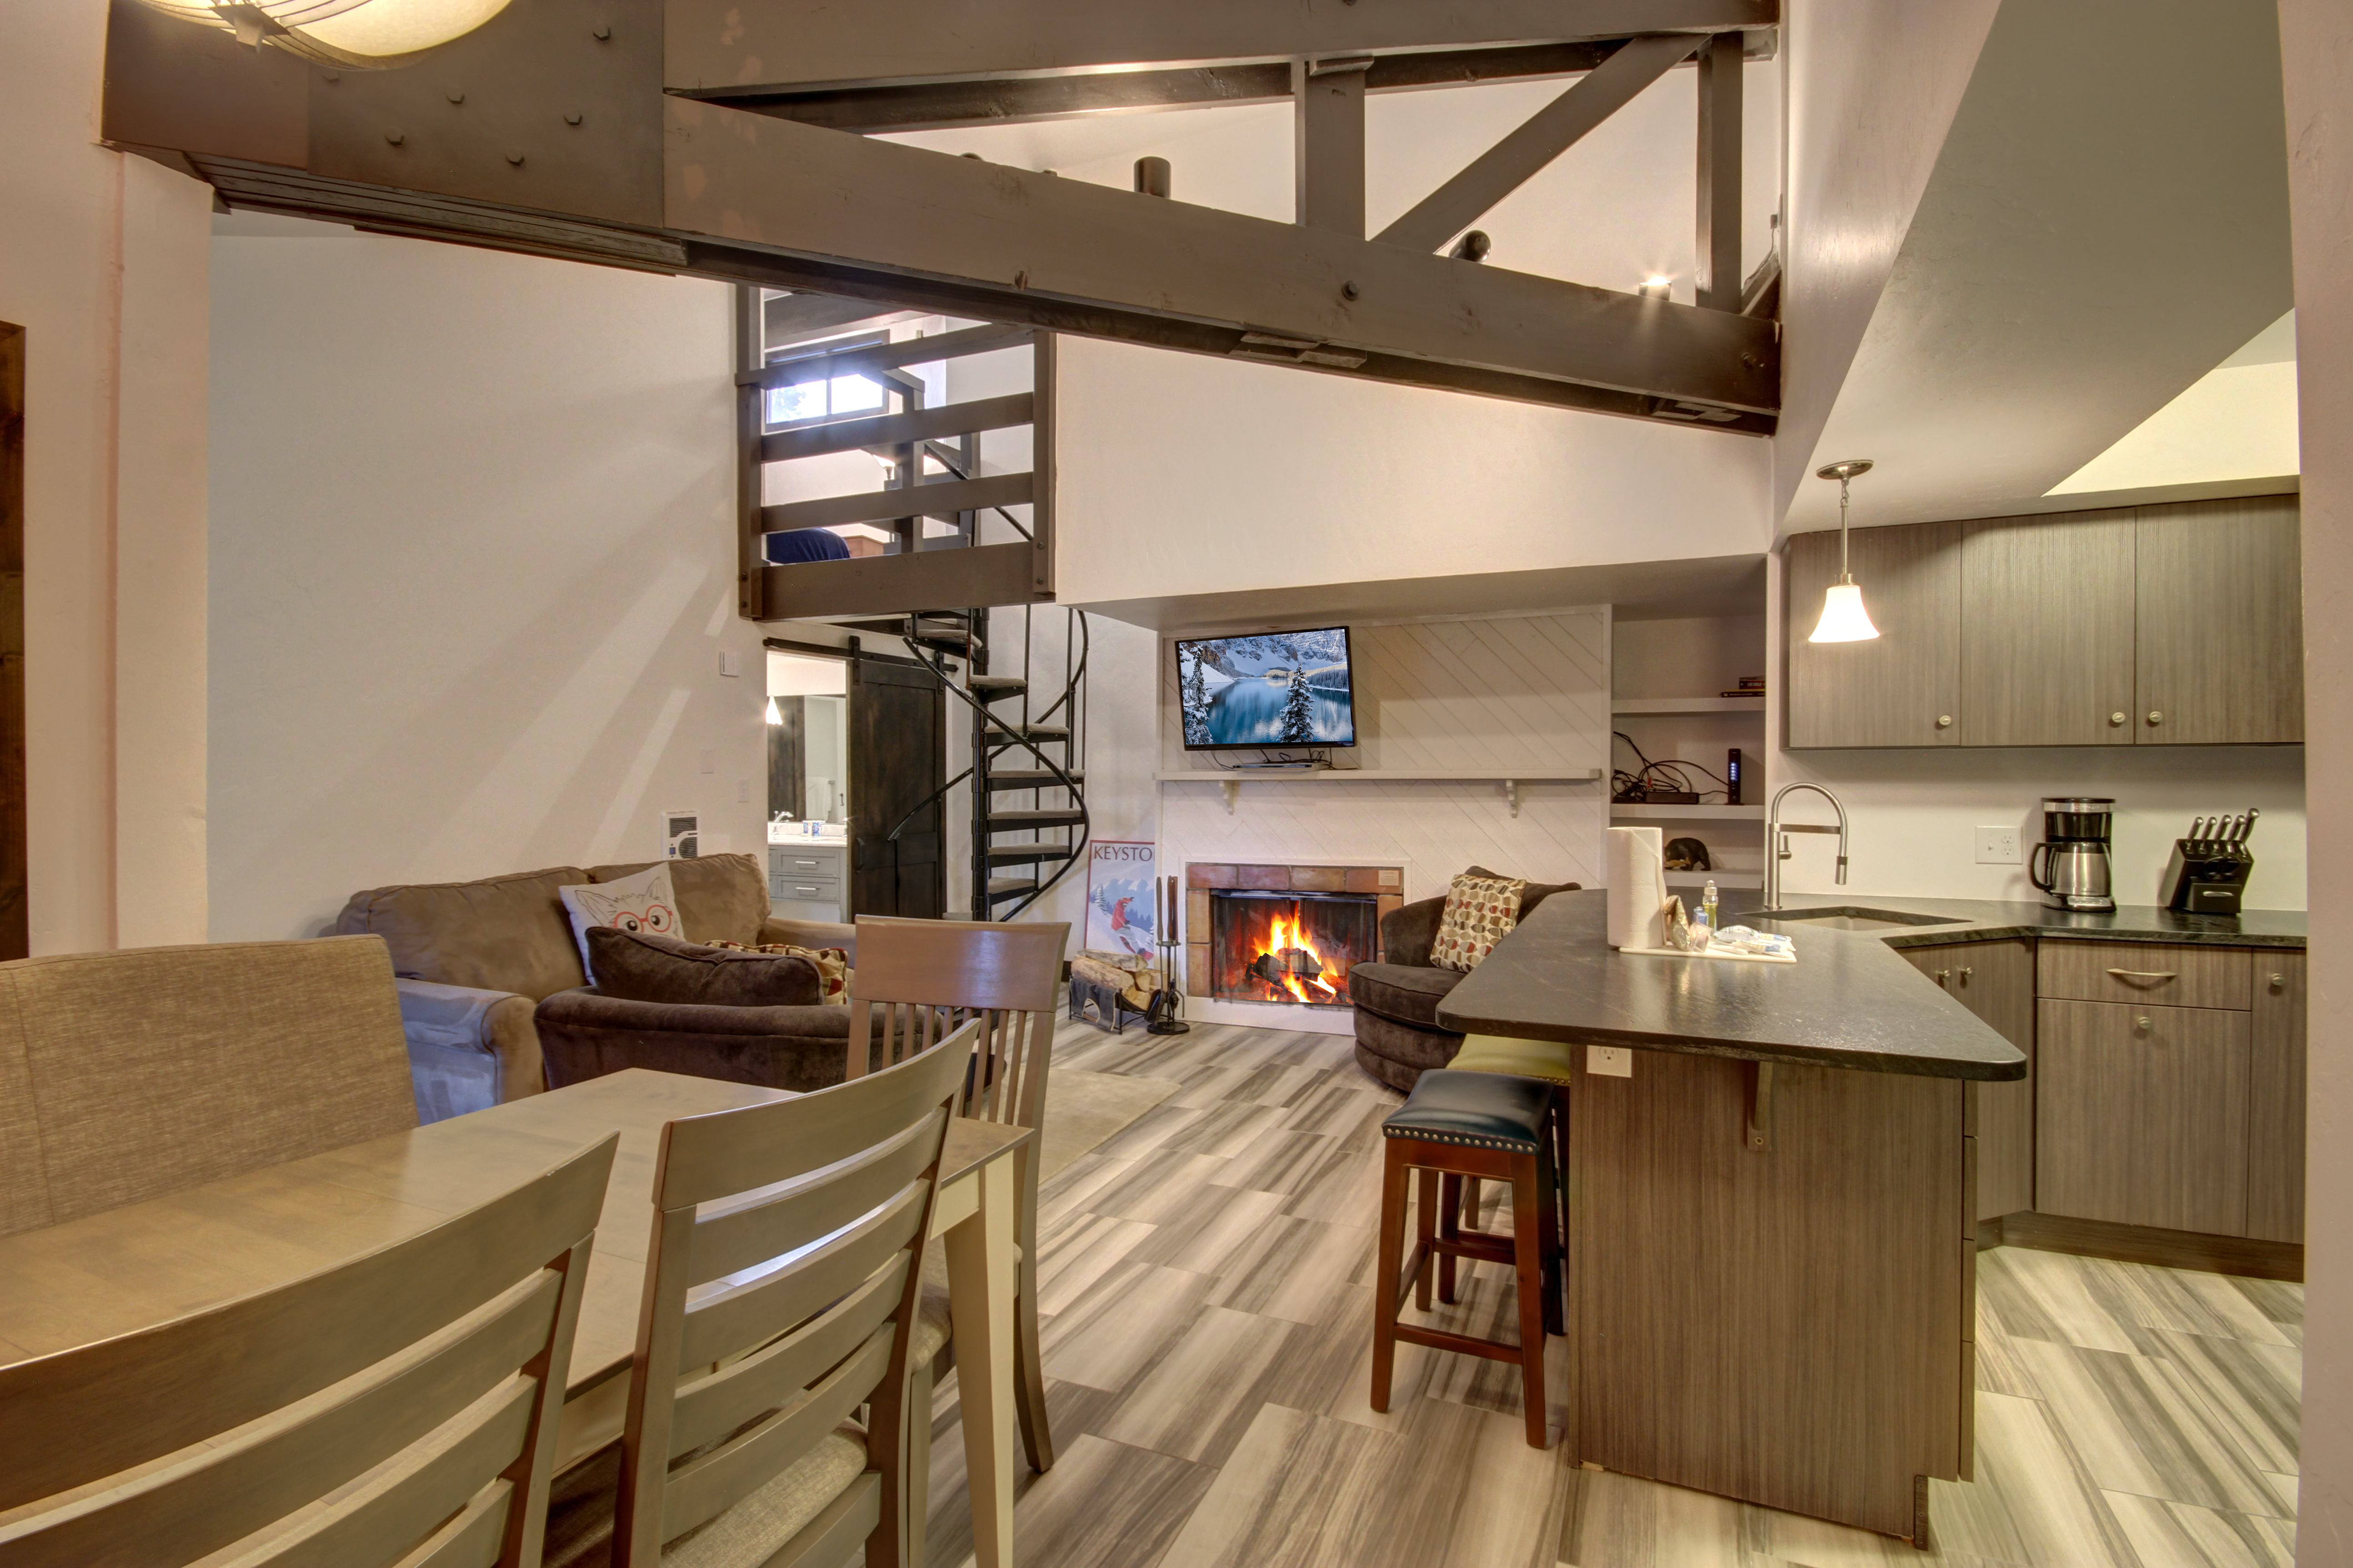 Dining area with beautiful wooden table